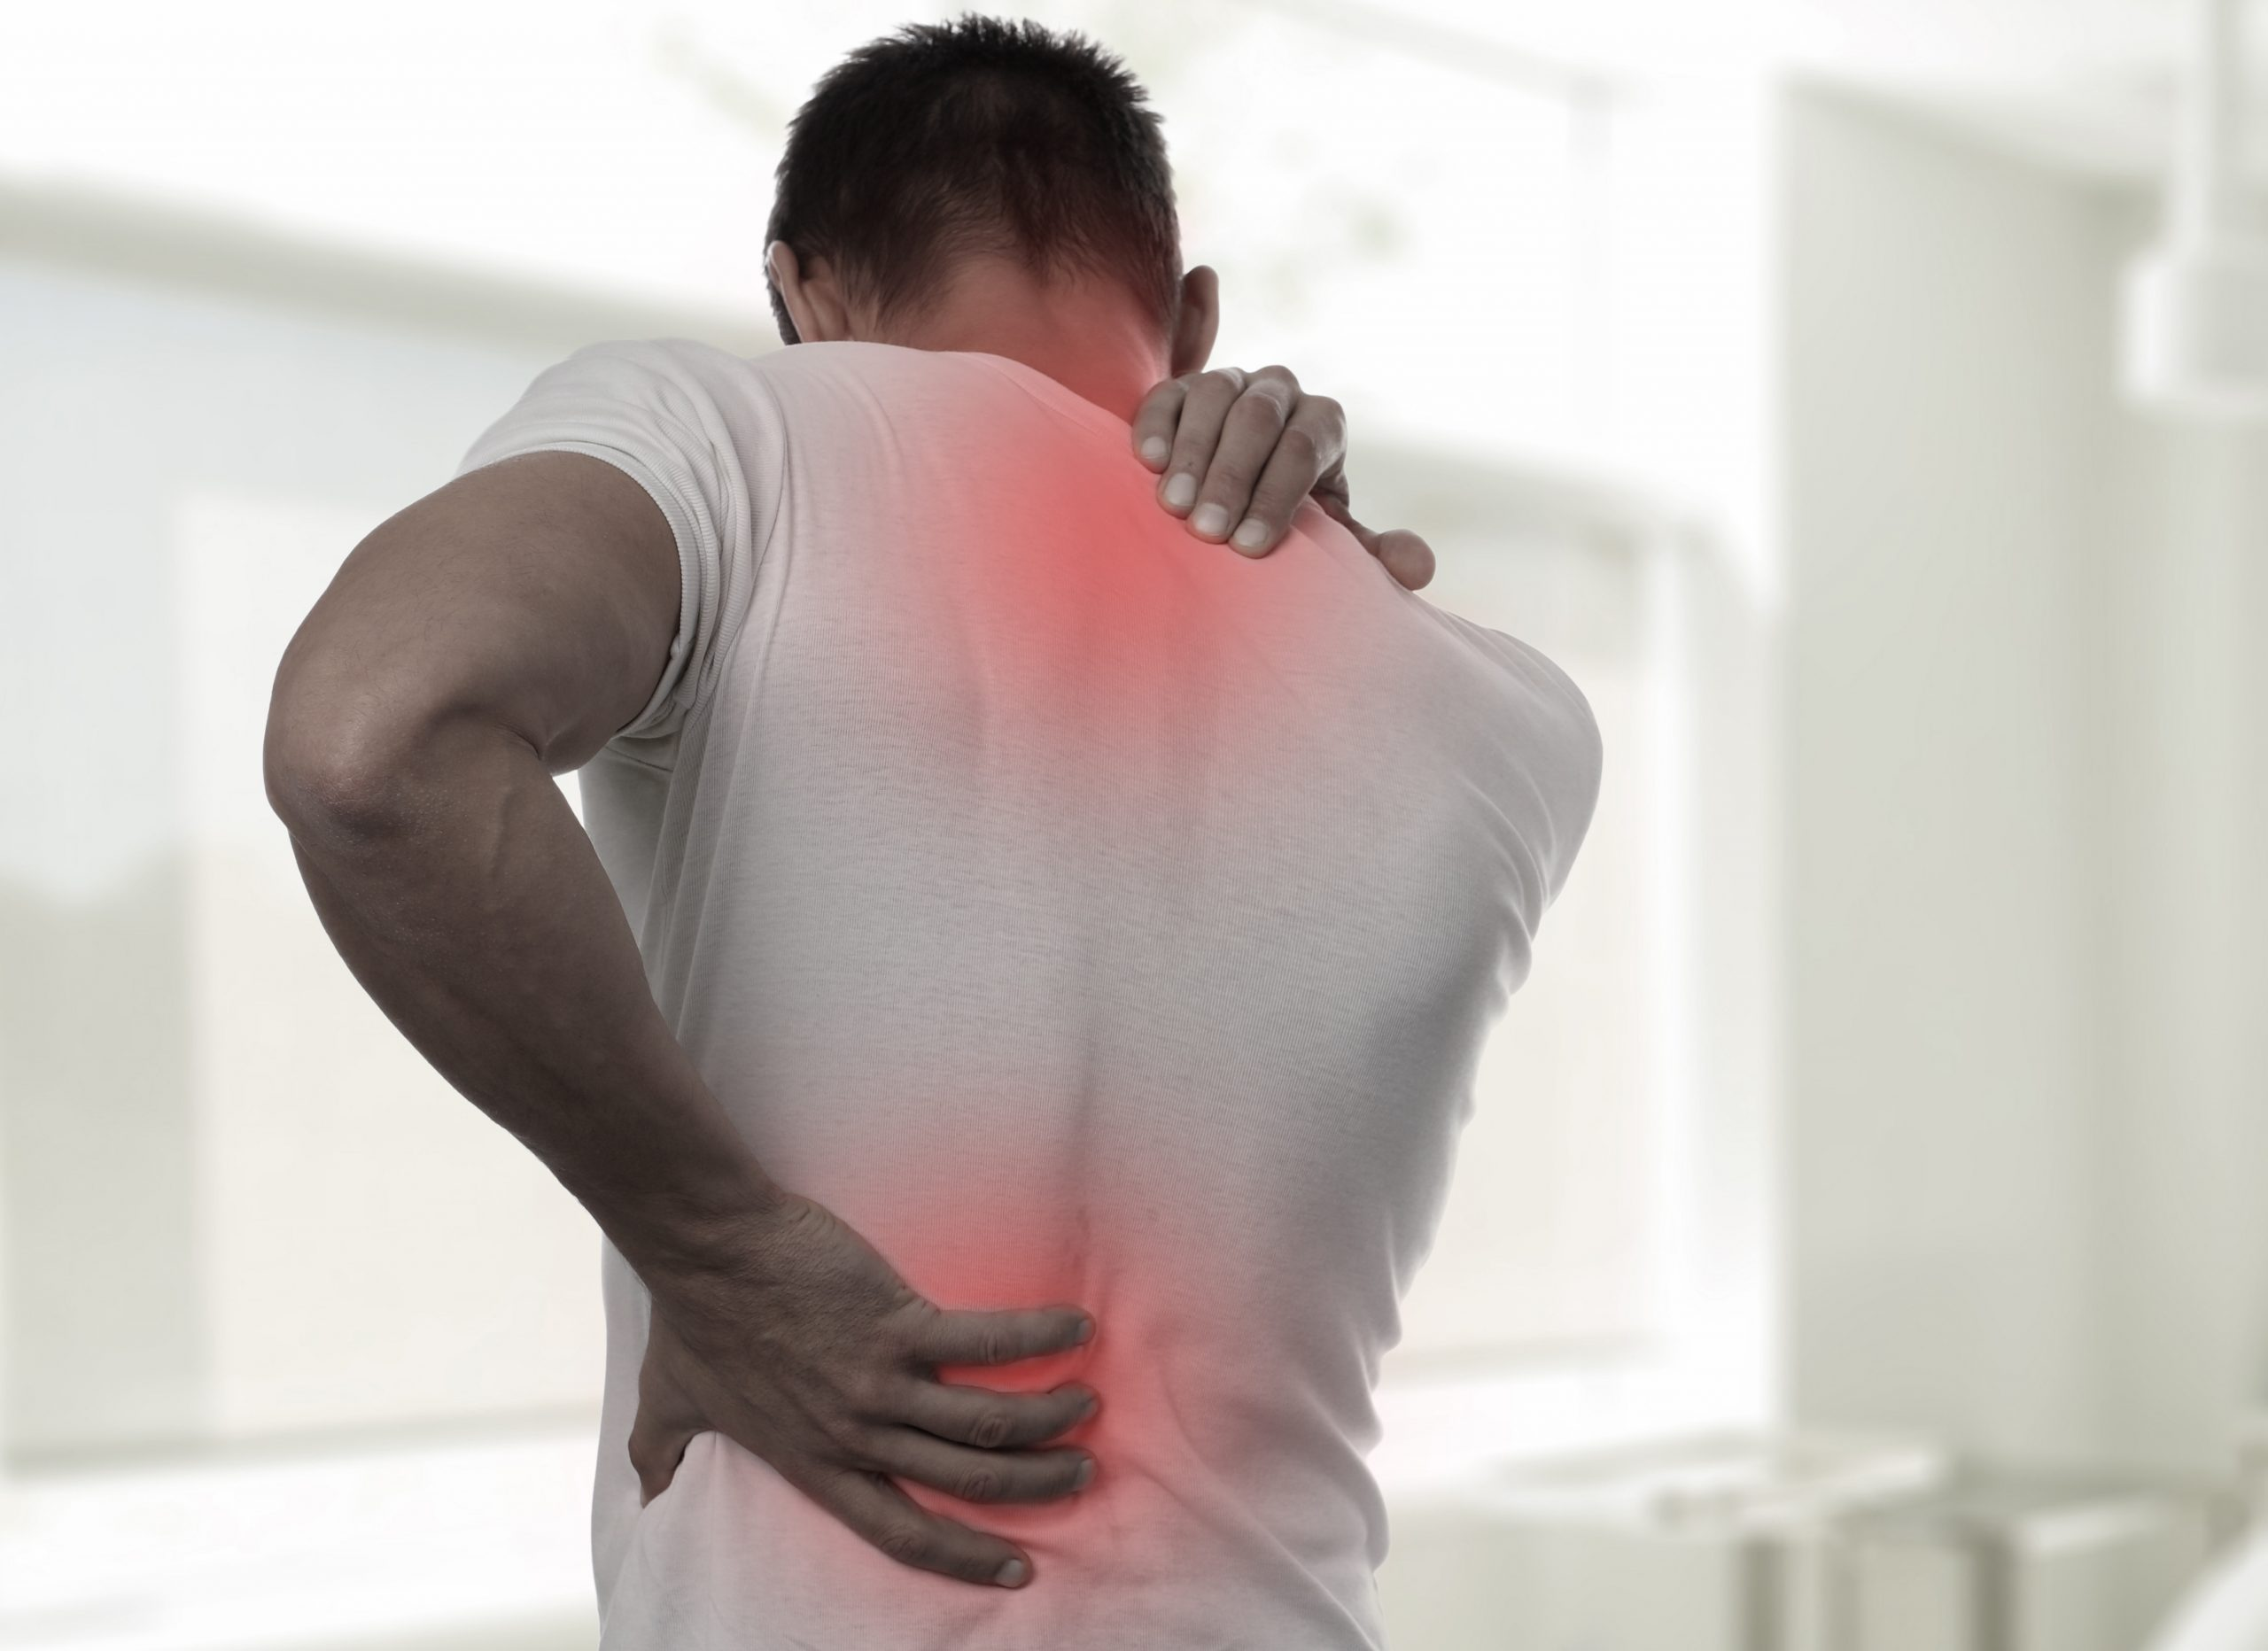 Take Control of your Neck Pain and Posture